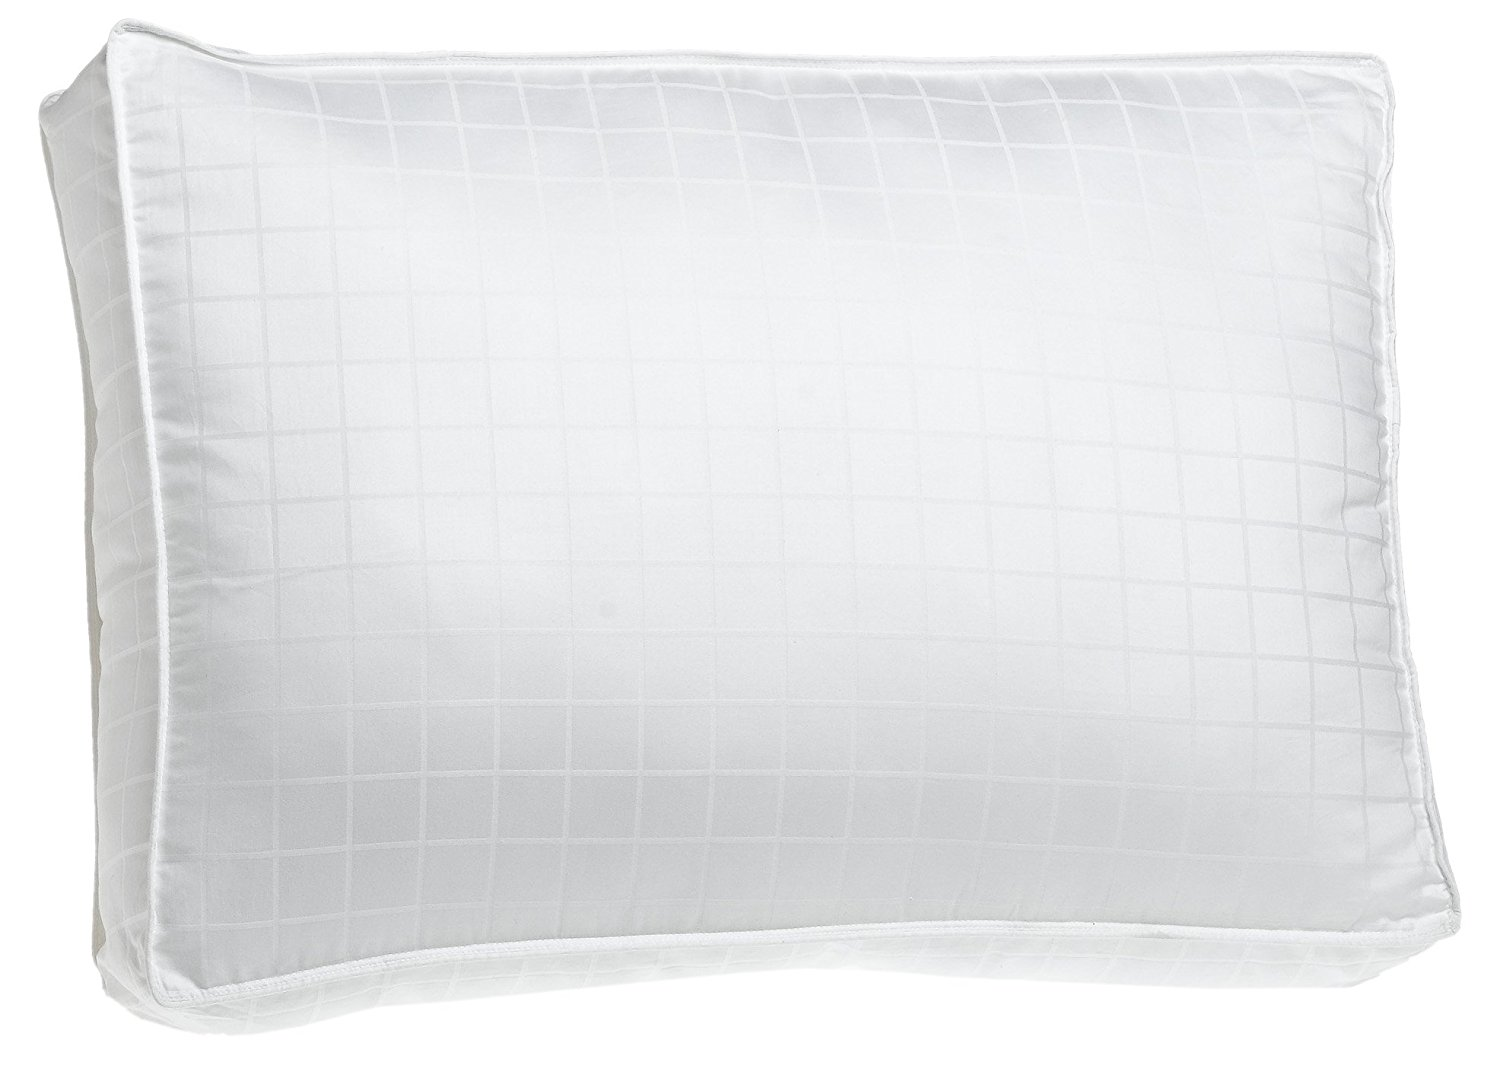 pillow cool by pillows isocool sleepbetter review side memory gusseted sleeper foam iso